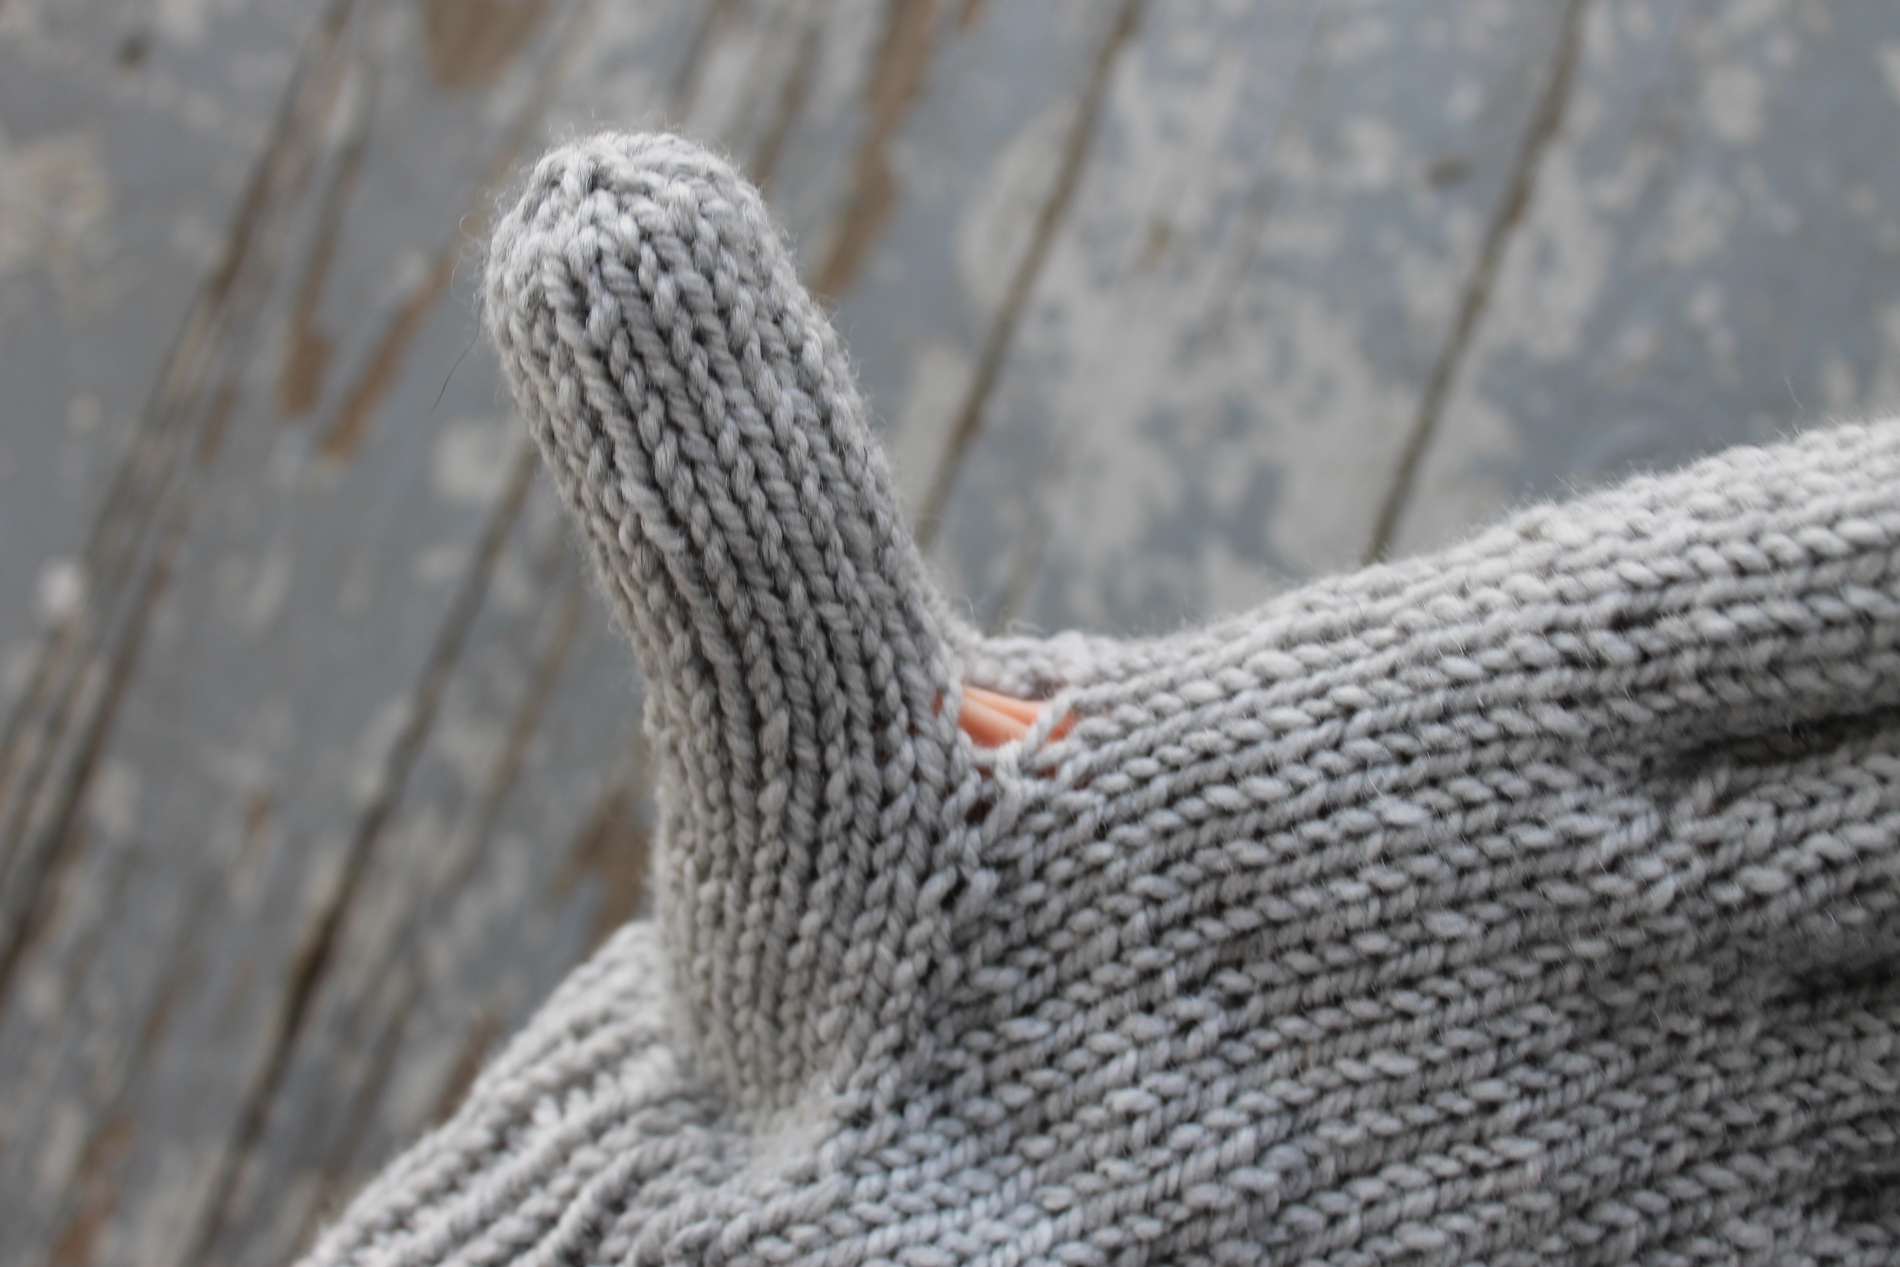 Holes that appear when knitting gloves